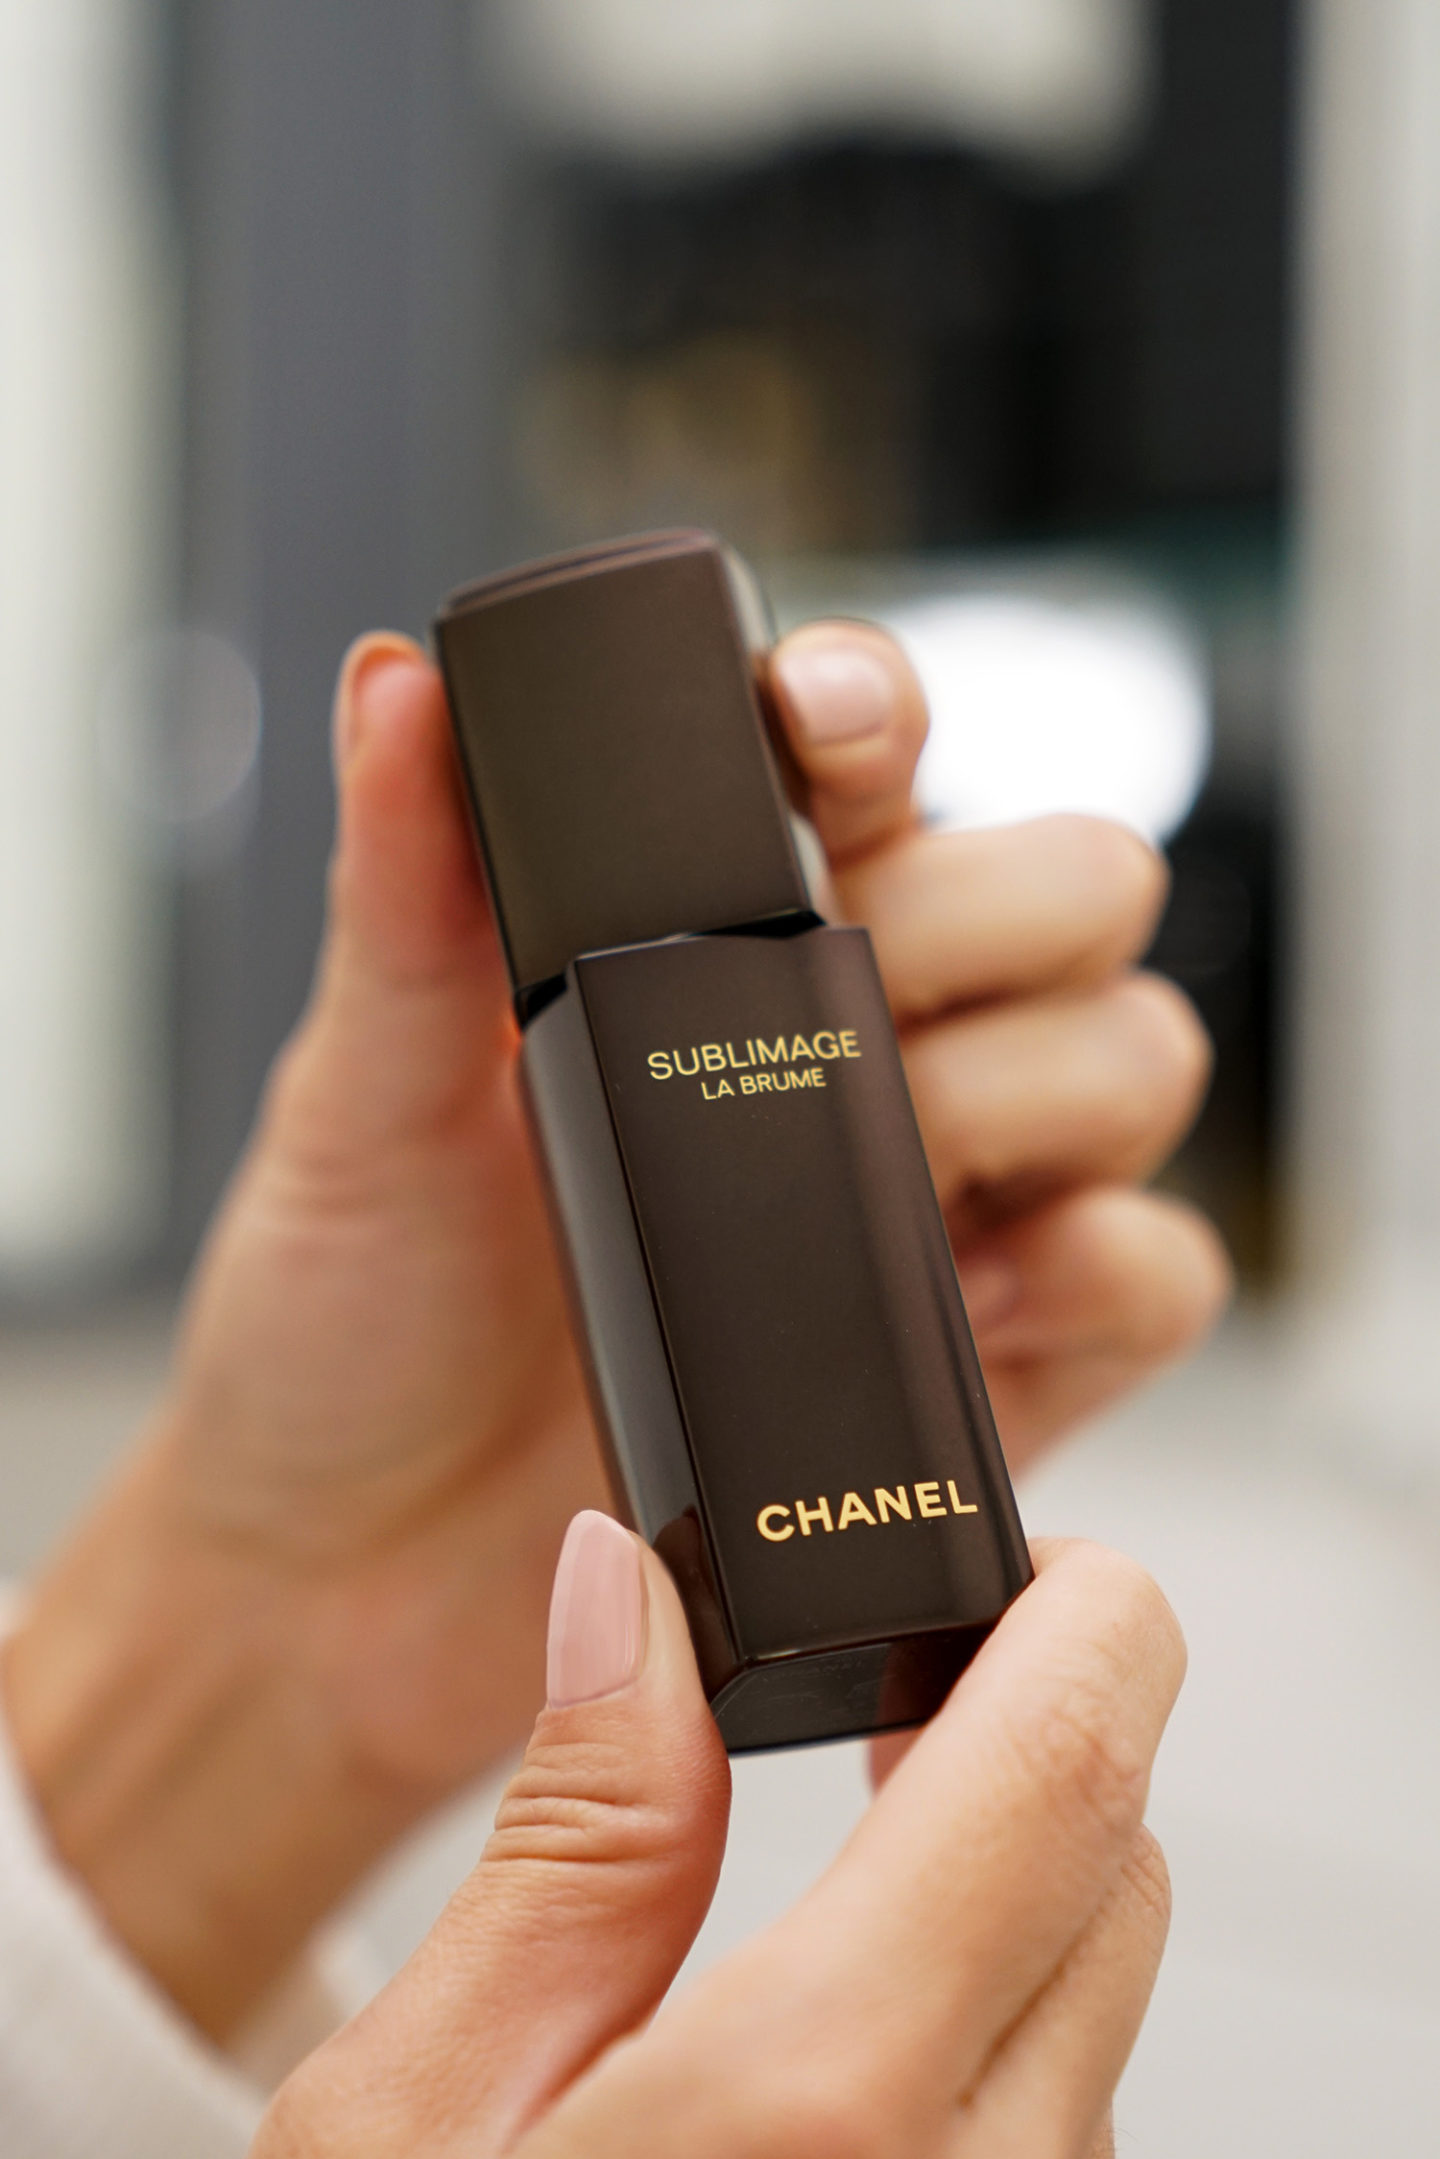 Chanel Sublimage Face Mist